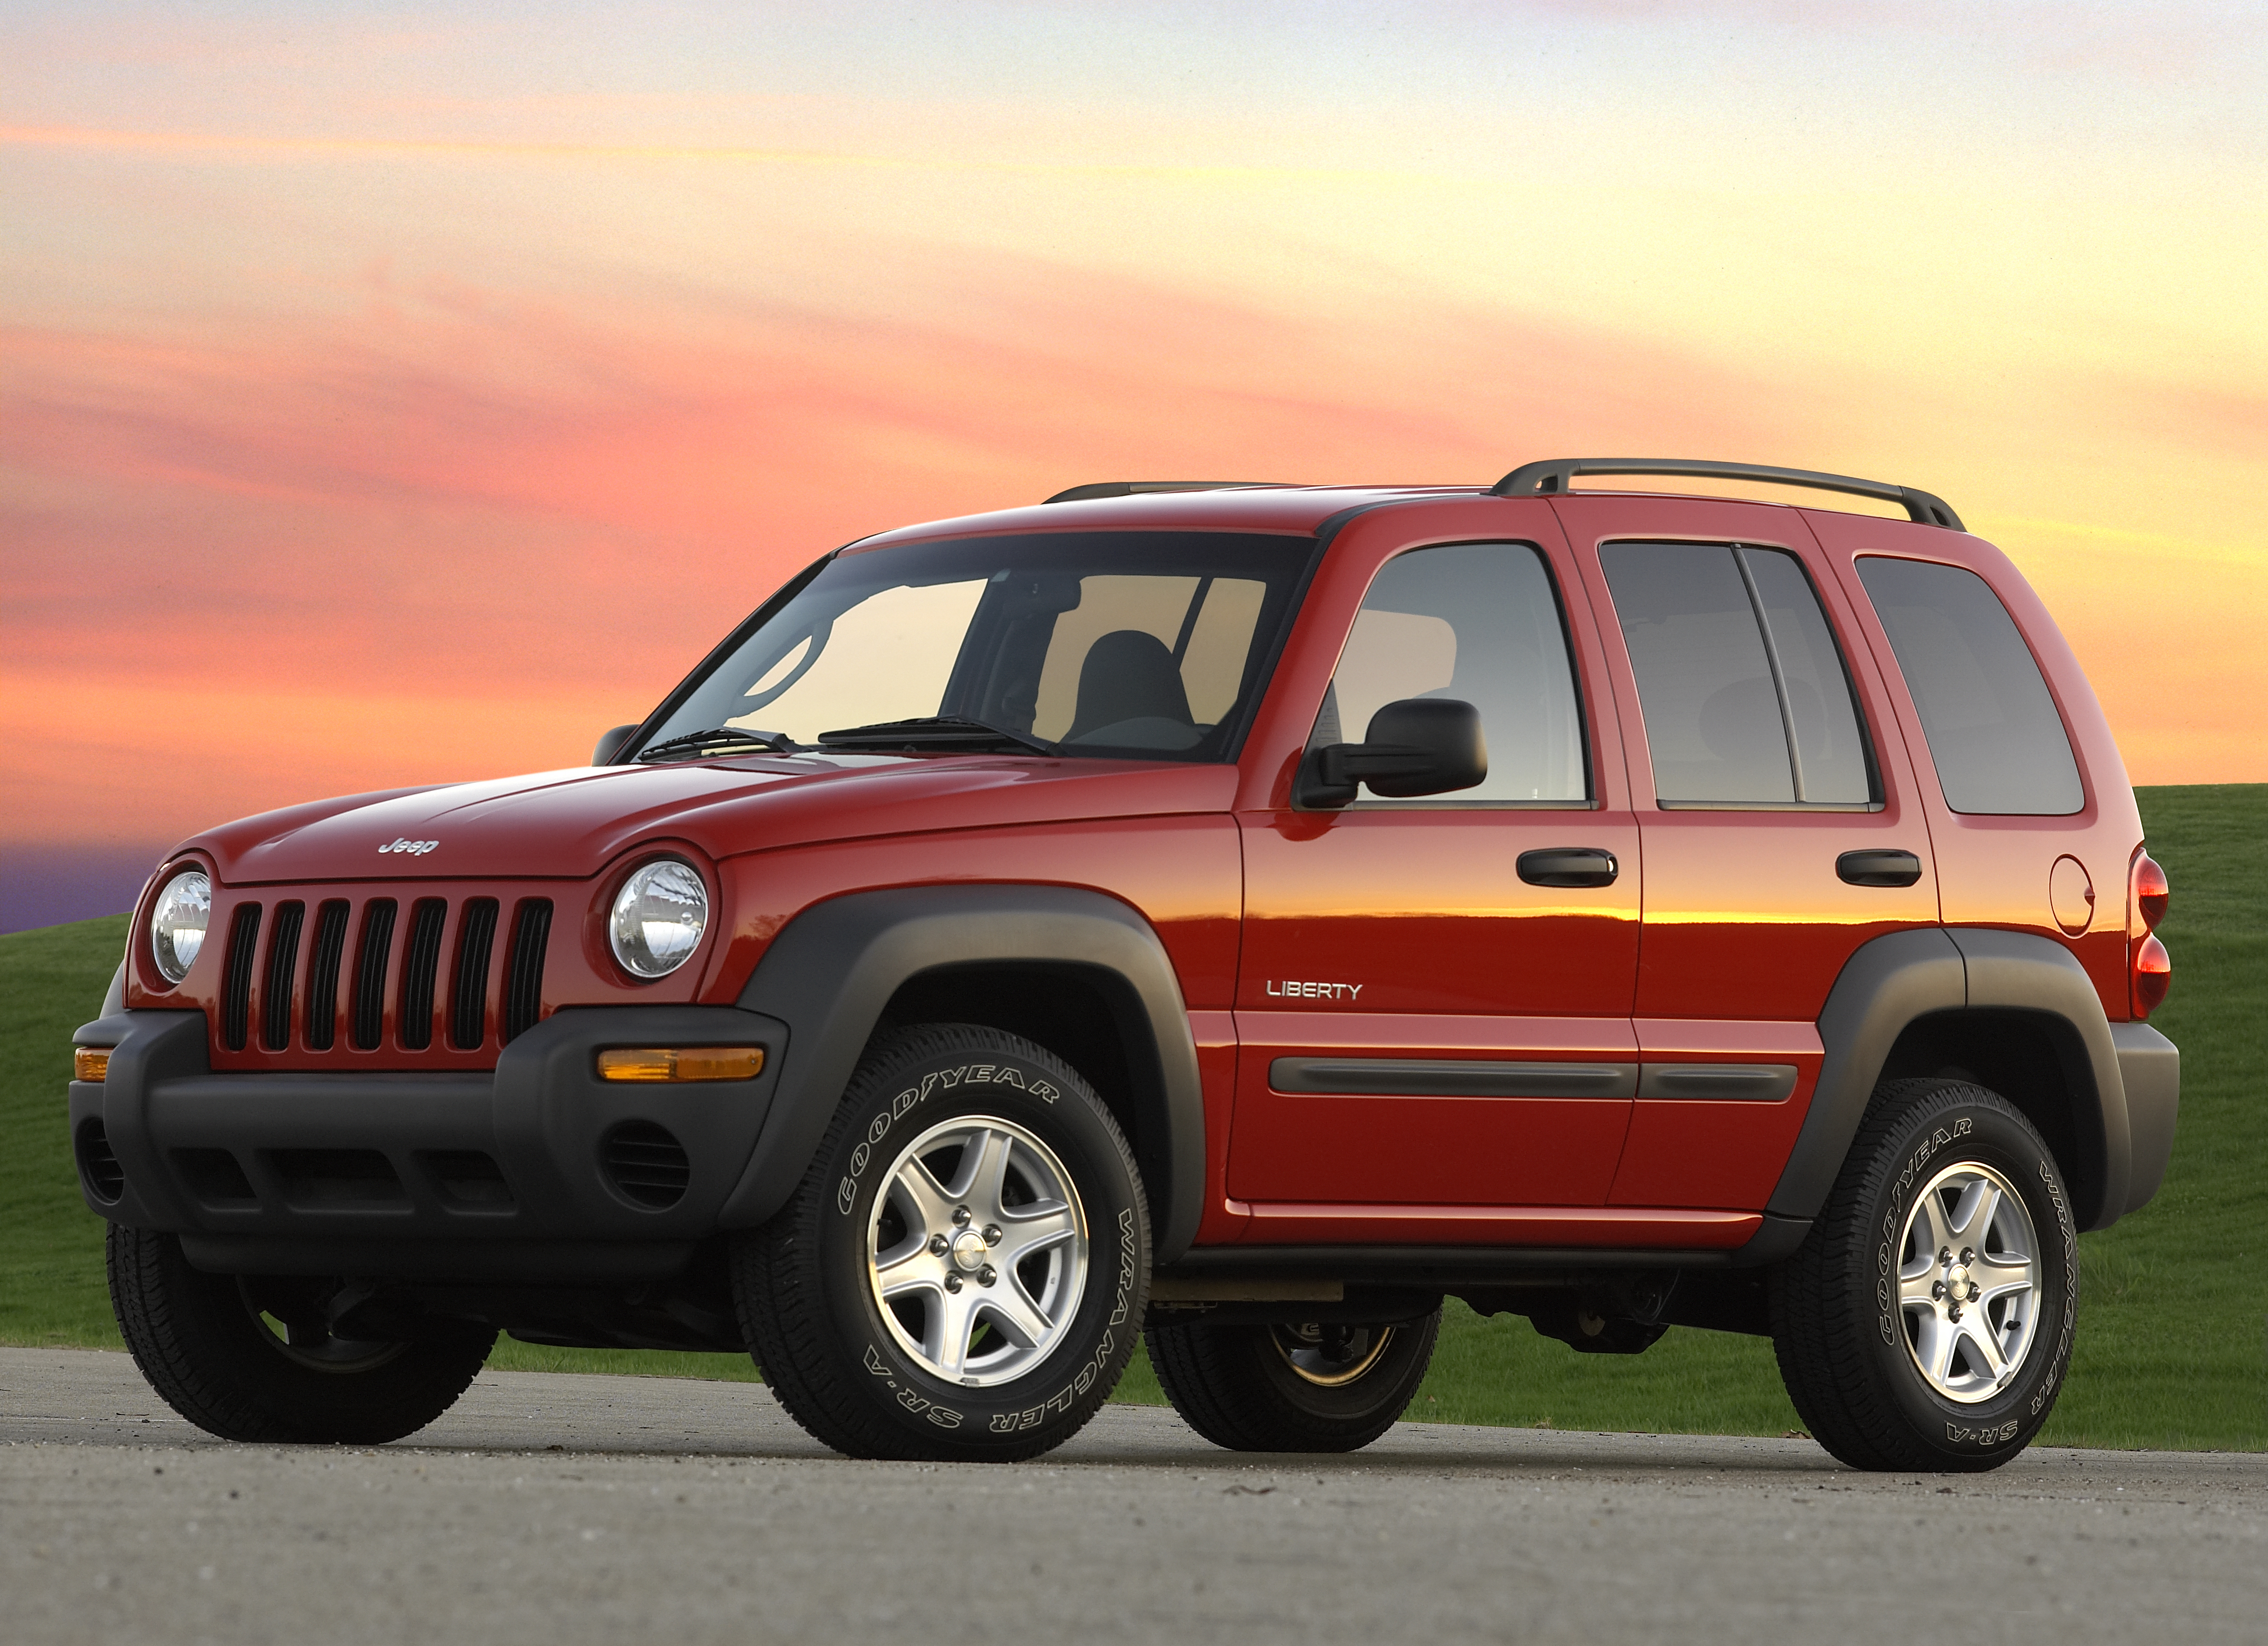 2014 Jeep Liberty Ii Pictures Information And Specs